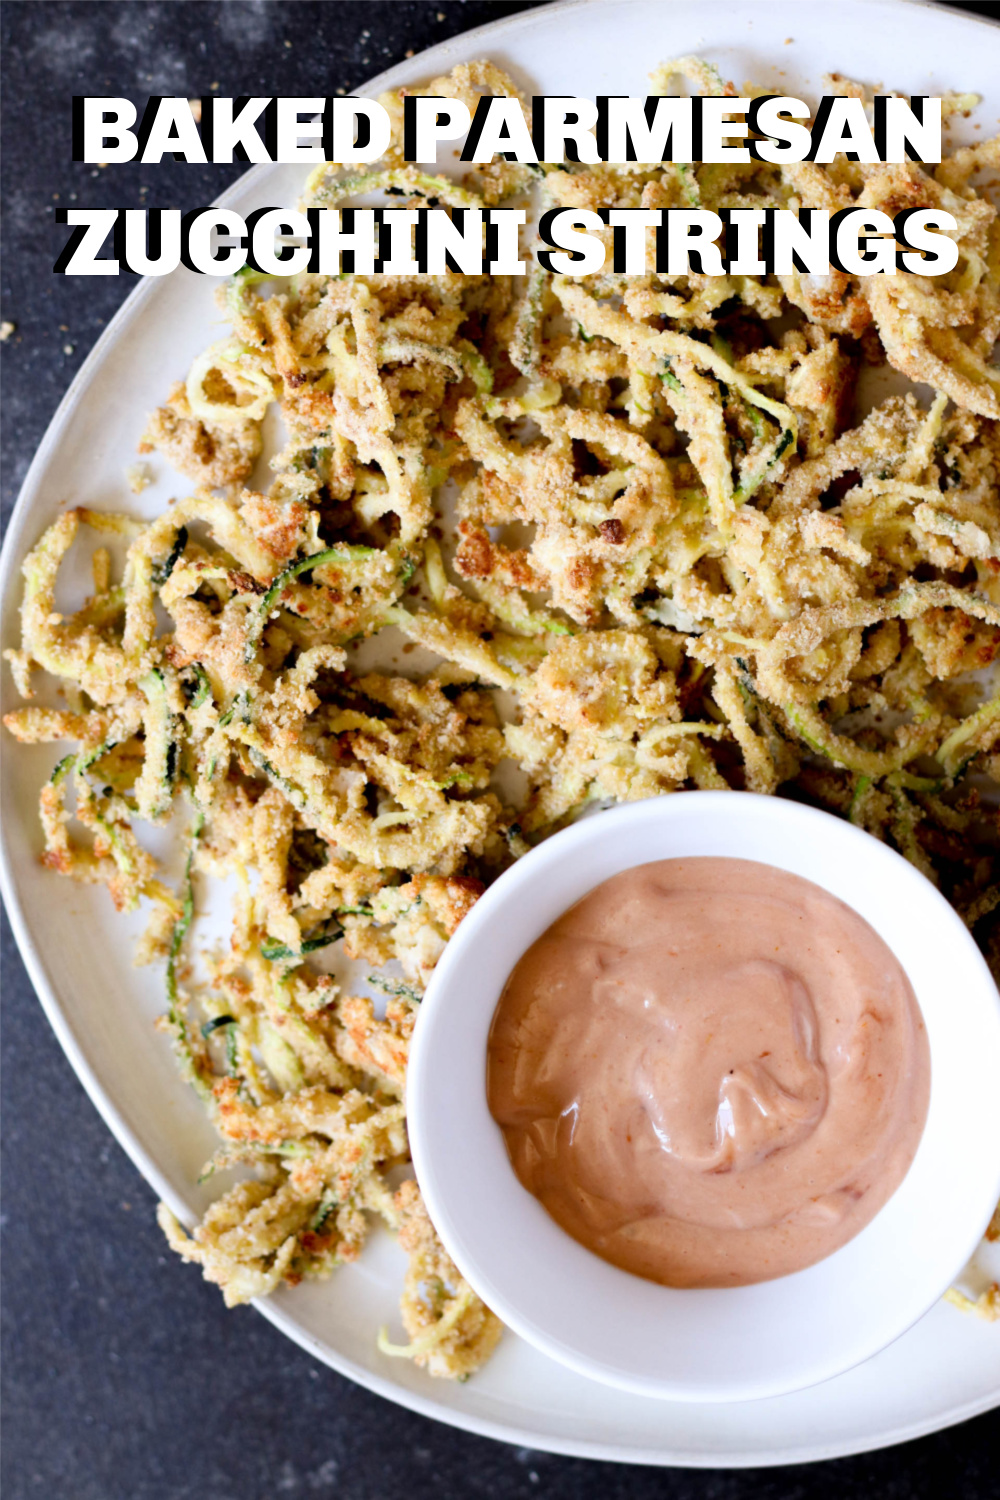 Baked Parmesan Zucchini Strings